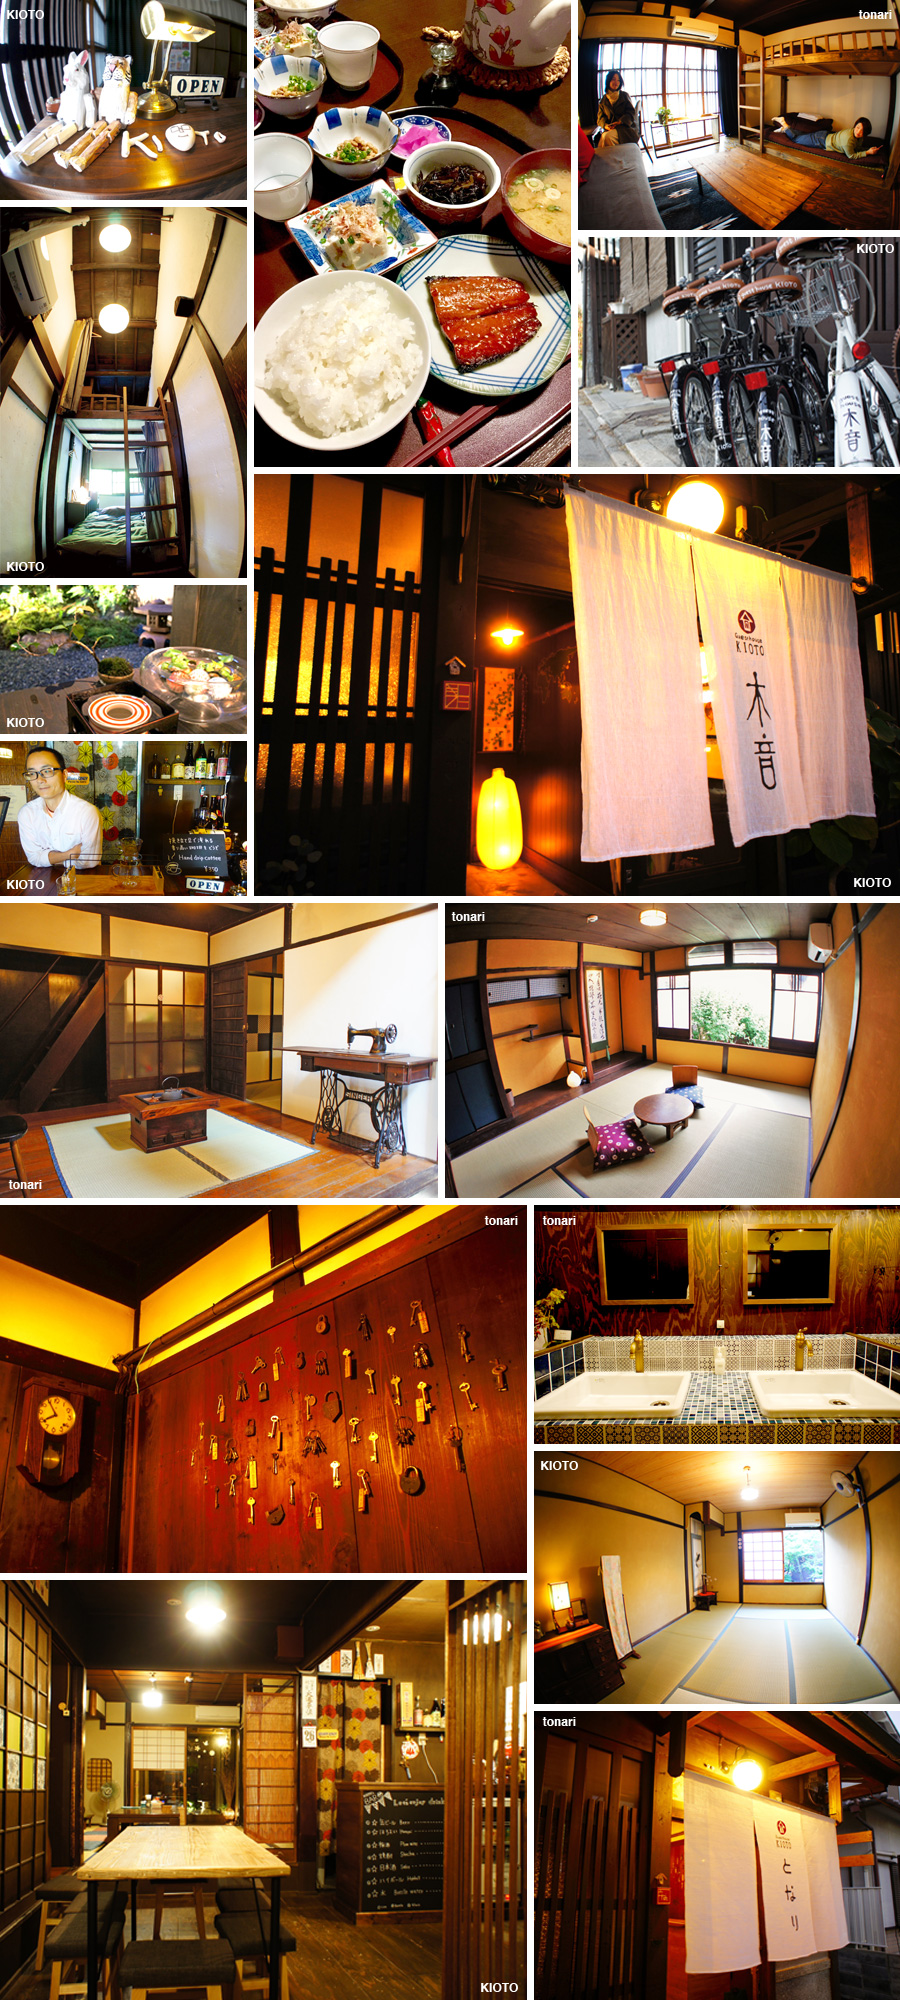 Kyoto,budget,auberge,guesthouse,traditional,aikido,hostel,booking,backpacker,Kioto,accommodation,goodhostelskyoto,